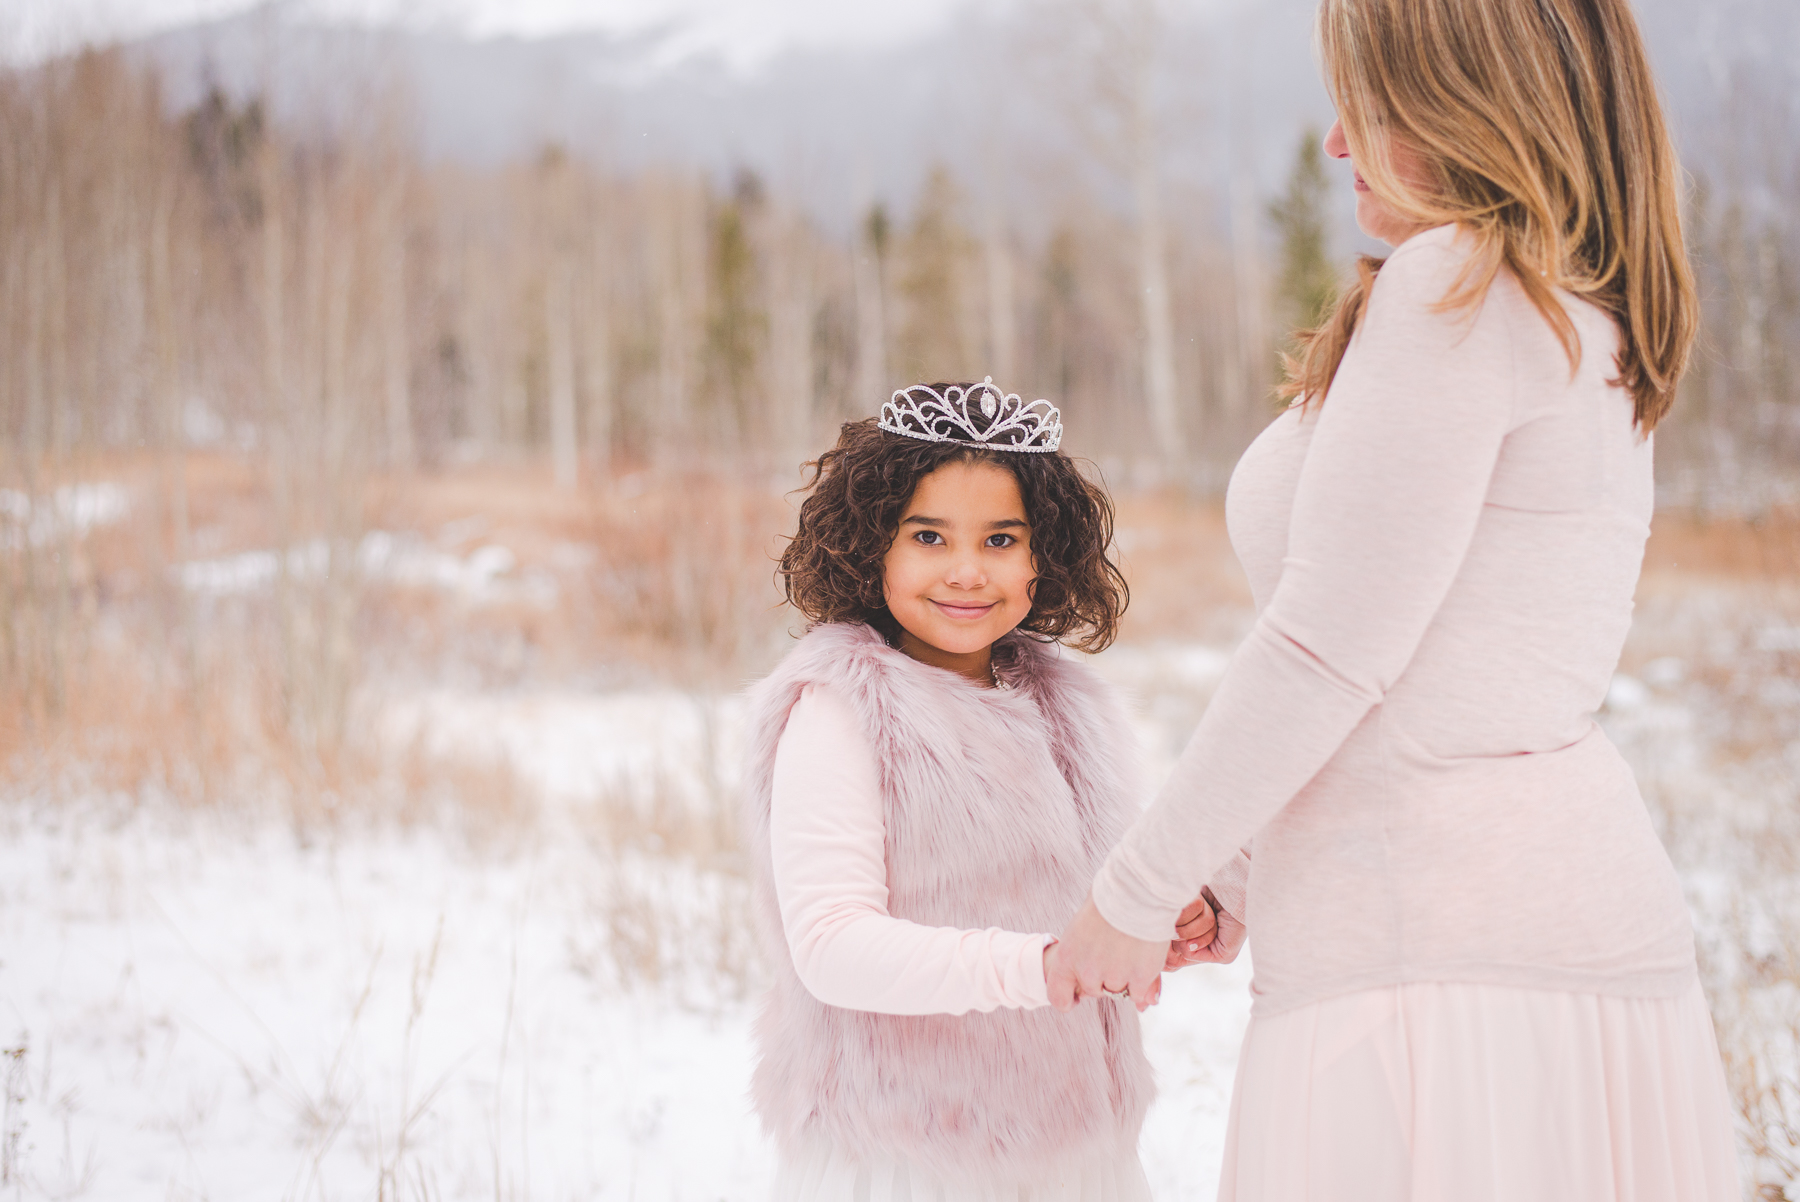 Blush outfits and tiara for young girl's winter portraits   Accessorizing for your Portrait Session   Keeping Composure Photography